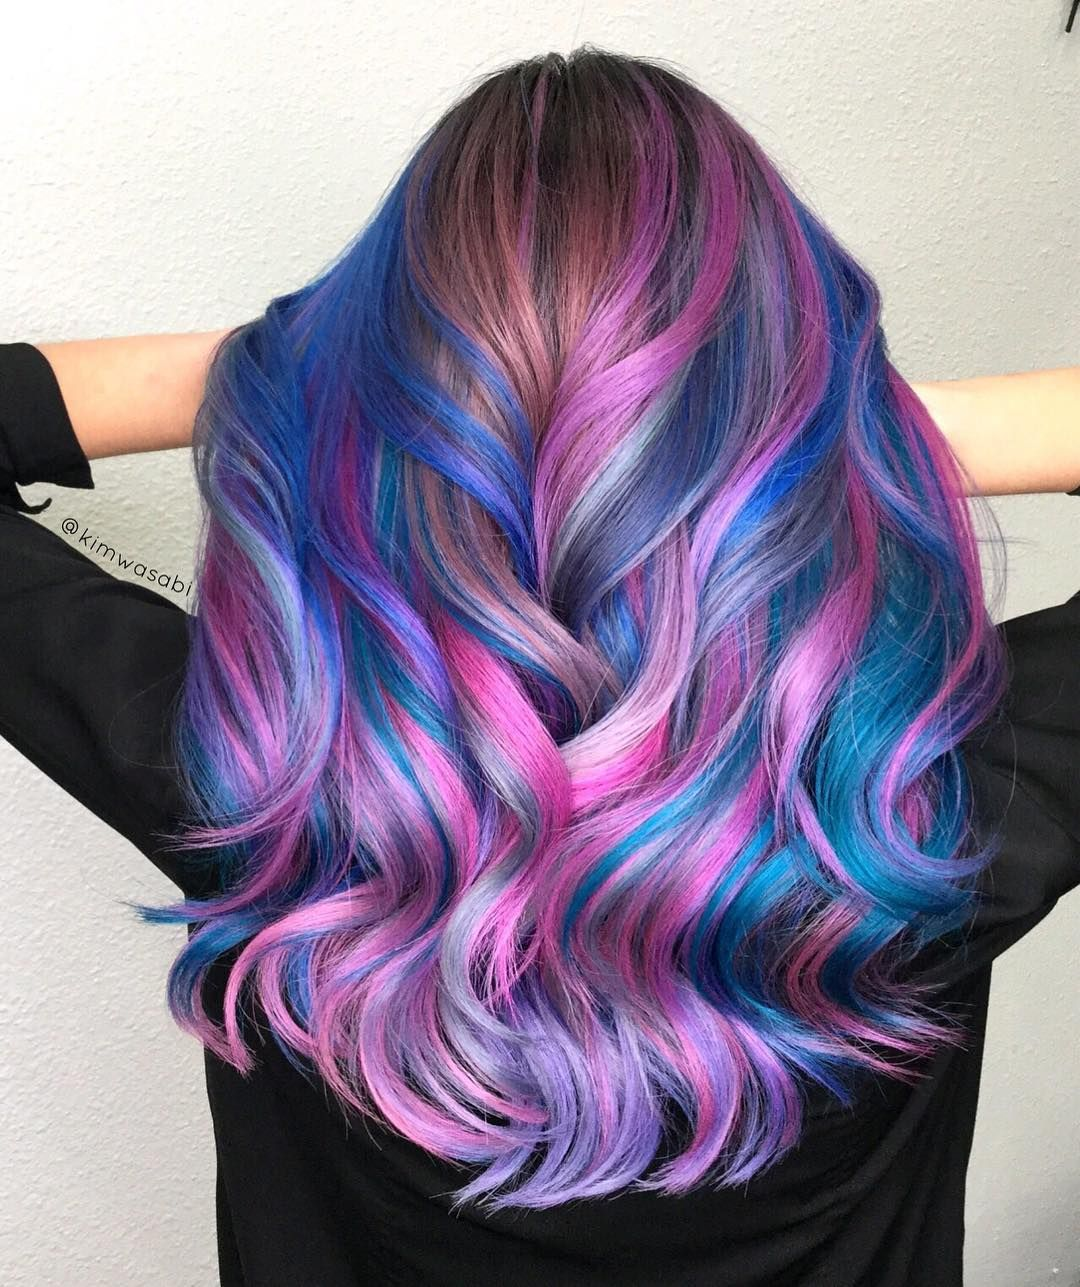 Pin By Giggles On Hair Pinterest Hair Coloring